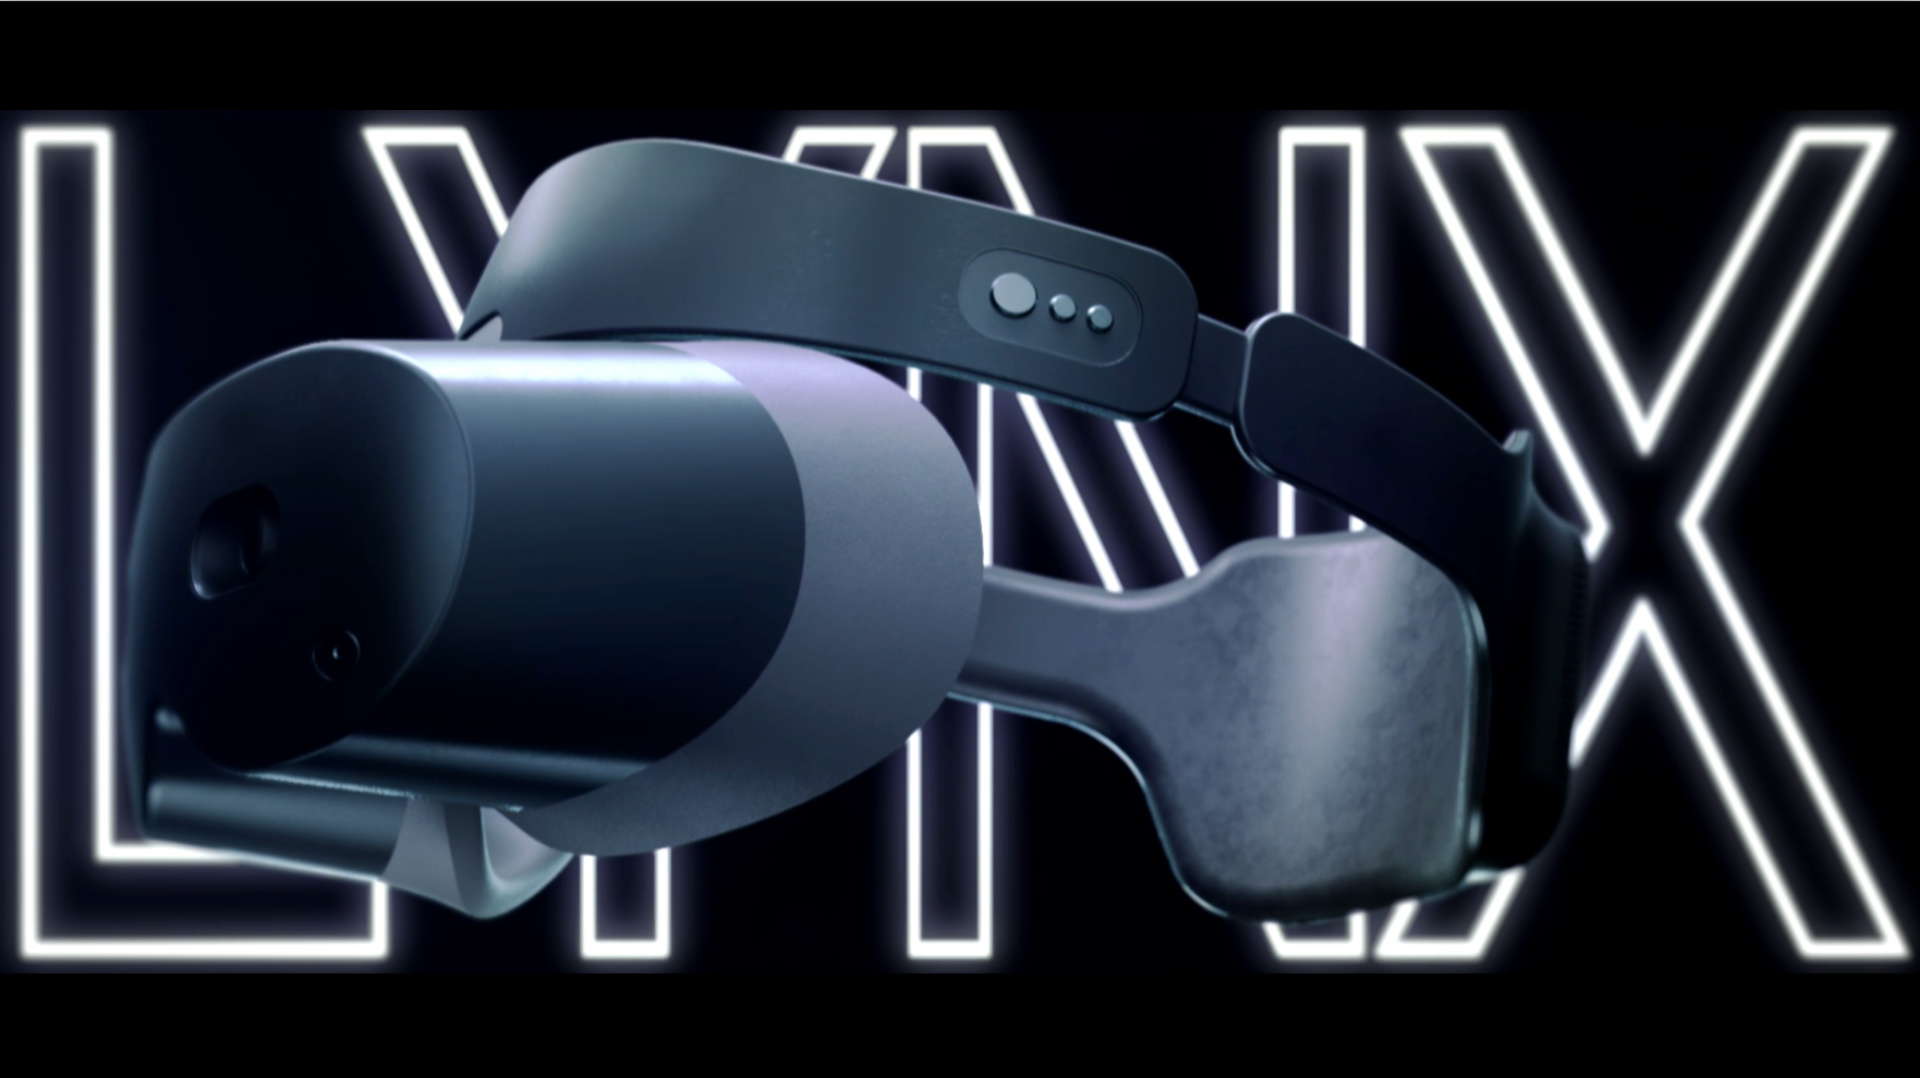 LYNX Reveals Standalone MR Headset with Snapdragon XR2, Eye-tracking, & Novel Optics – Highway to VR 12